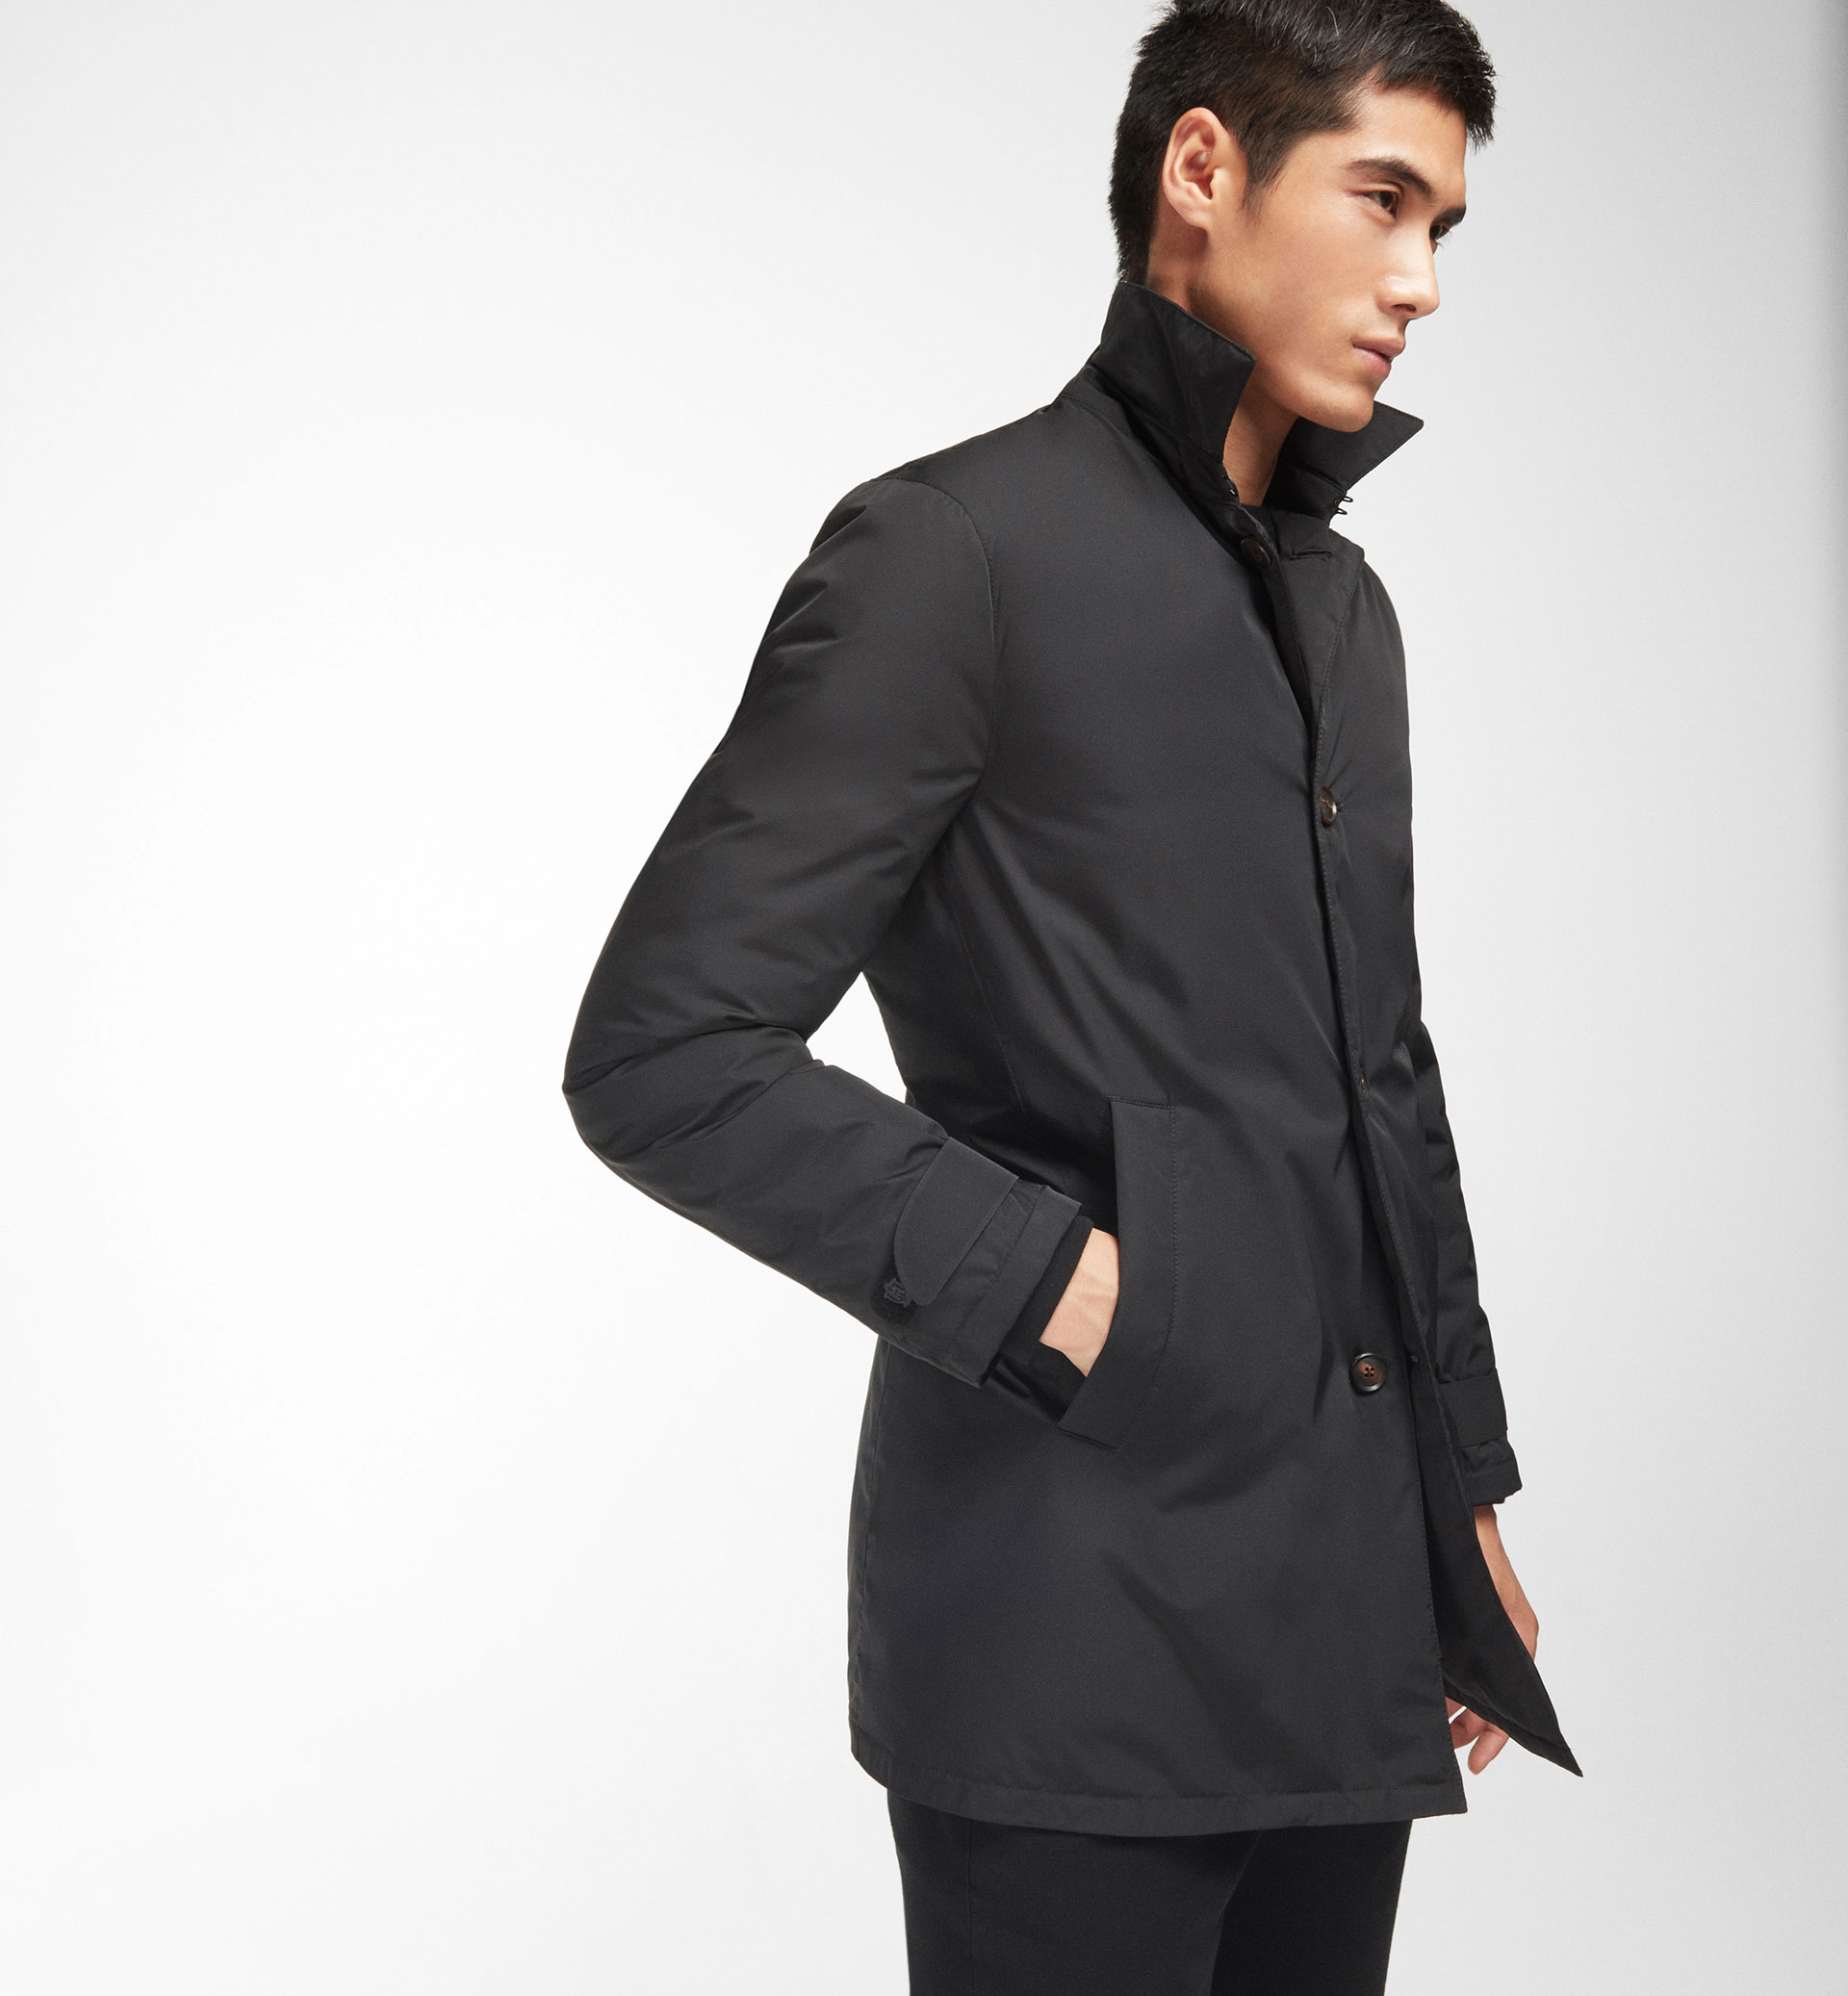 TECHNICAL BLACK TRENCH COAT